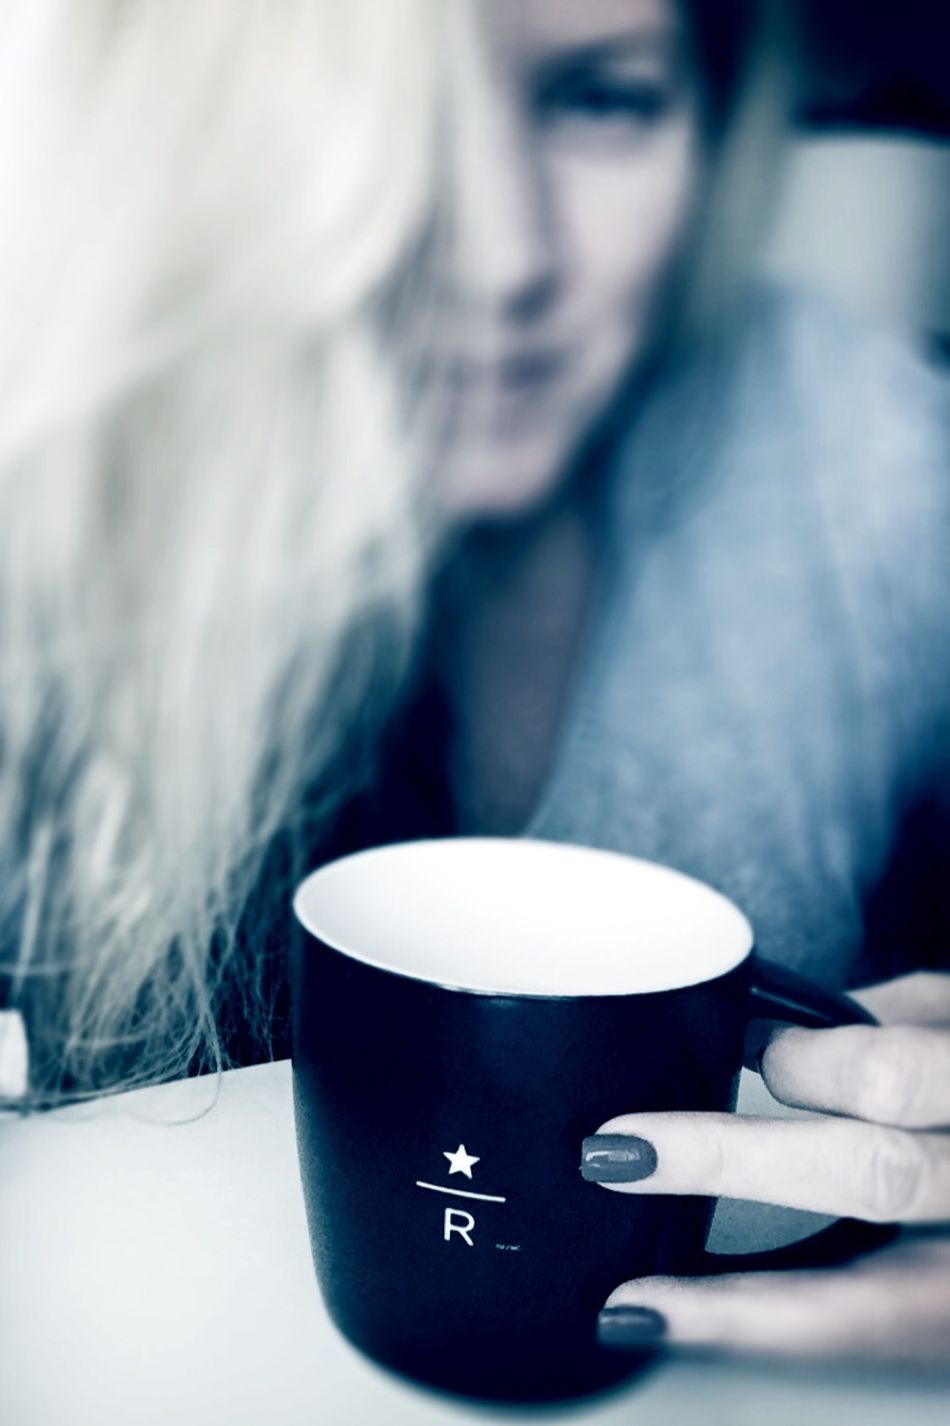 Coffee That's Me Taking Photos Selfie Californiagirl Just A Girl My Poison ❤️☕️ My Poison Today's Hot Look IPhoneography